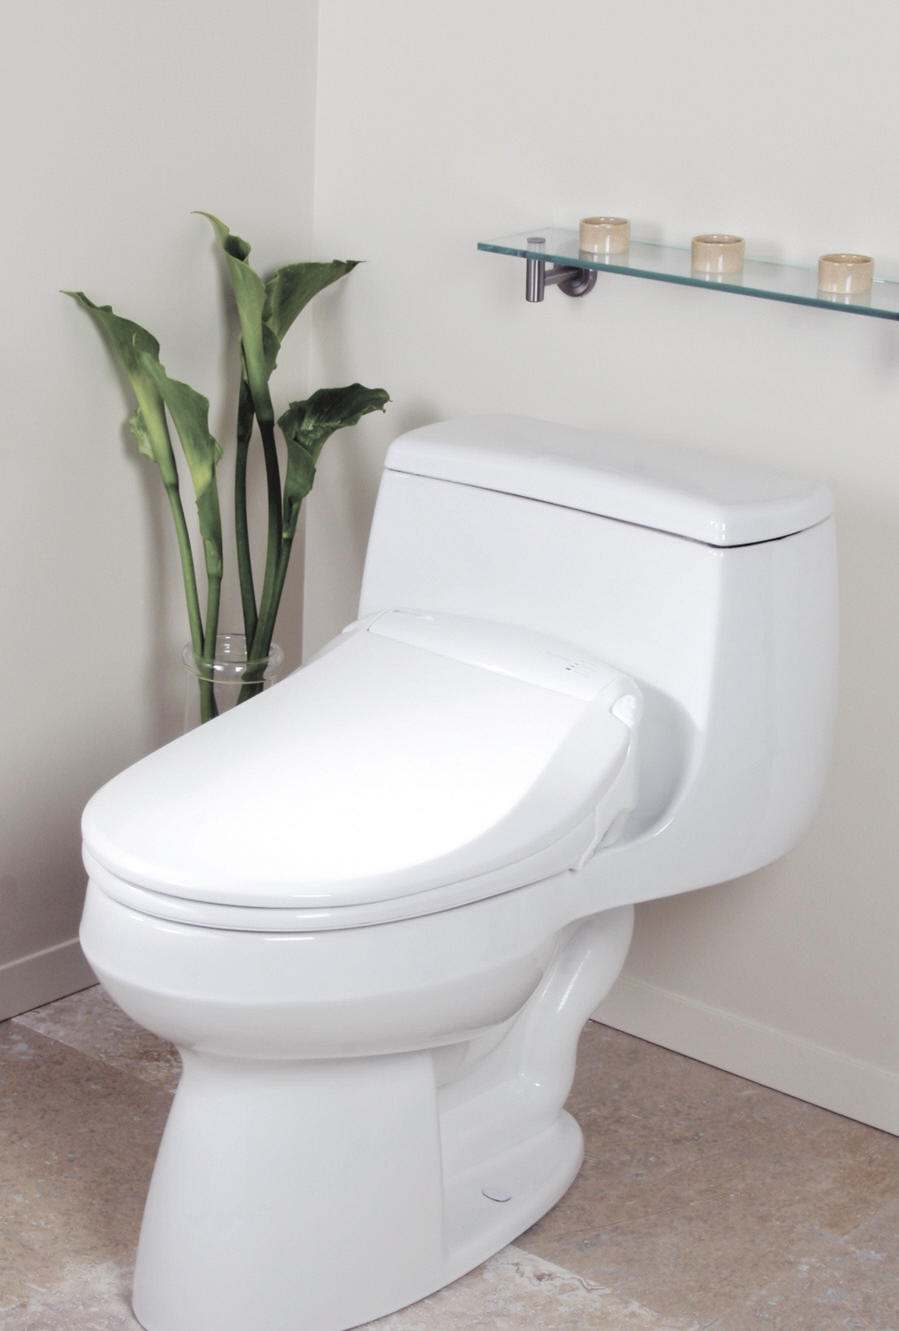 how to remove plaque on the toilet how to clean a water stone in the toilet plumbing. Black Bedroom Furniture Sets. Home Design Ideas